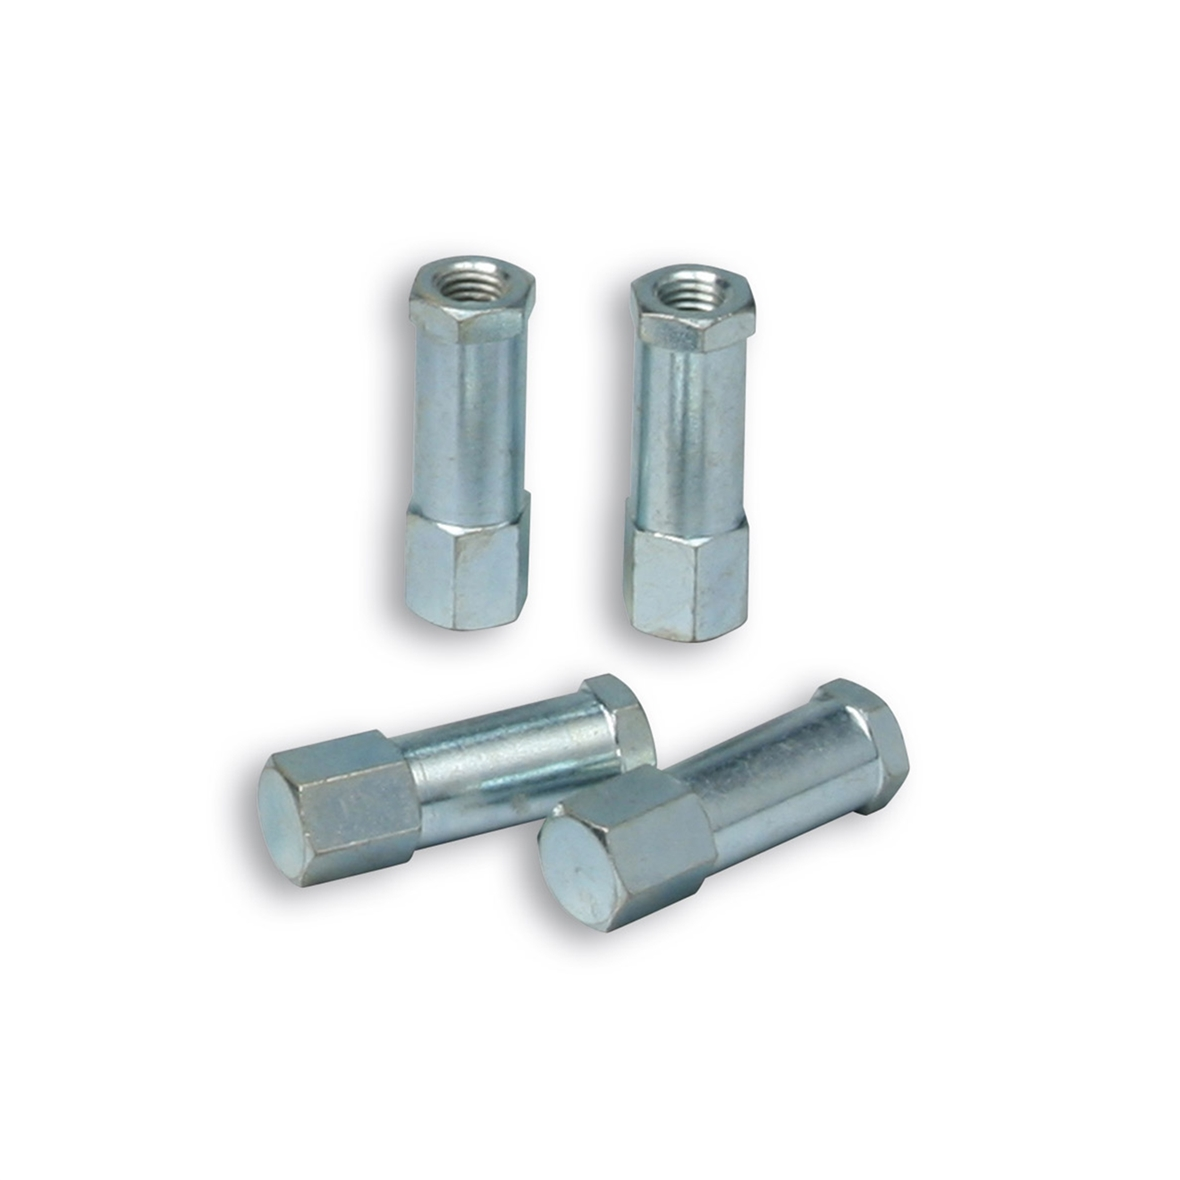 Product Image for 'Screws, for cylinder kit M315477/​M315098/​M318394/​M318393, MALOSSITitle'